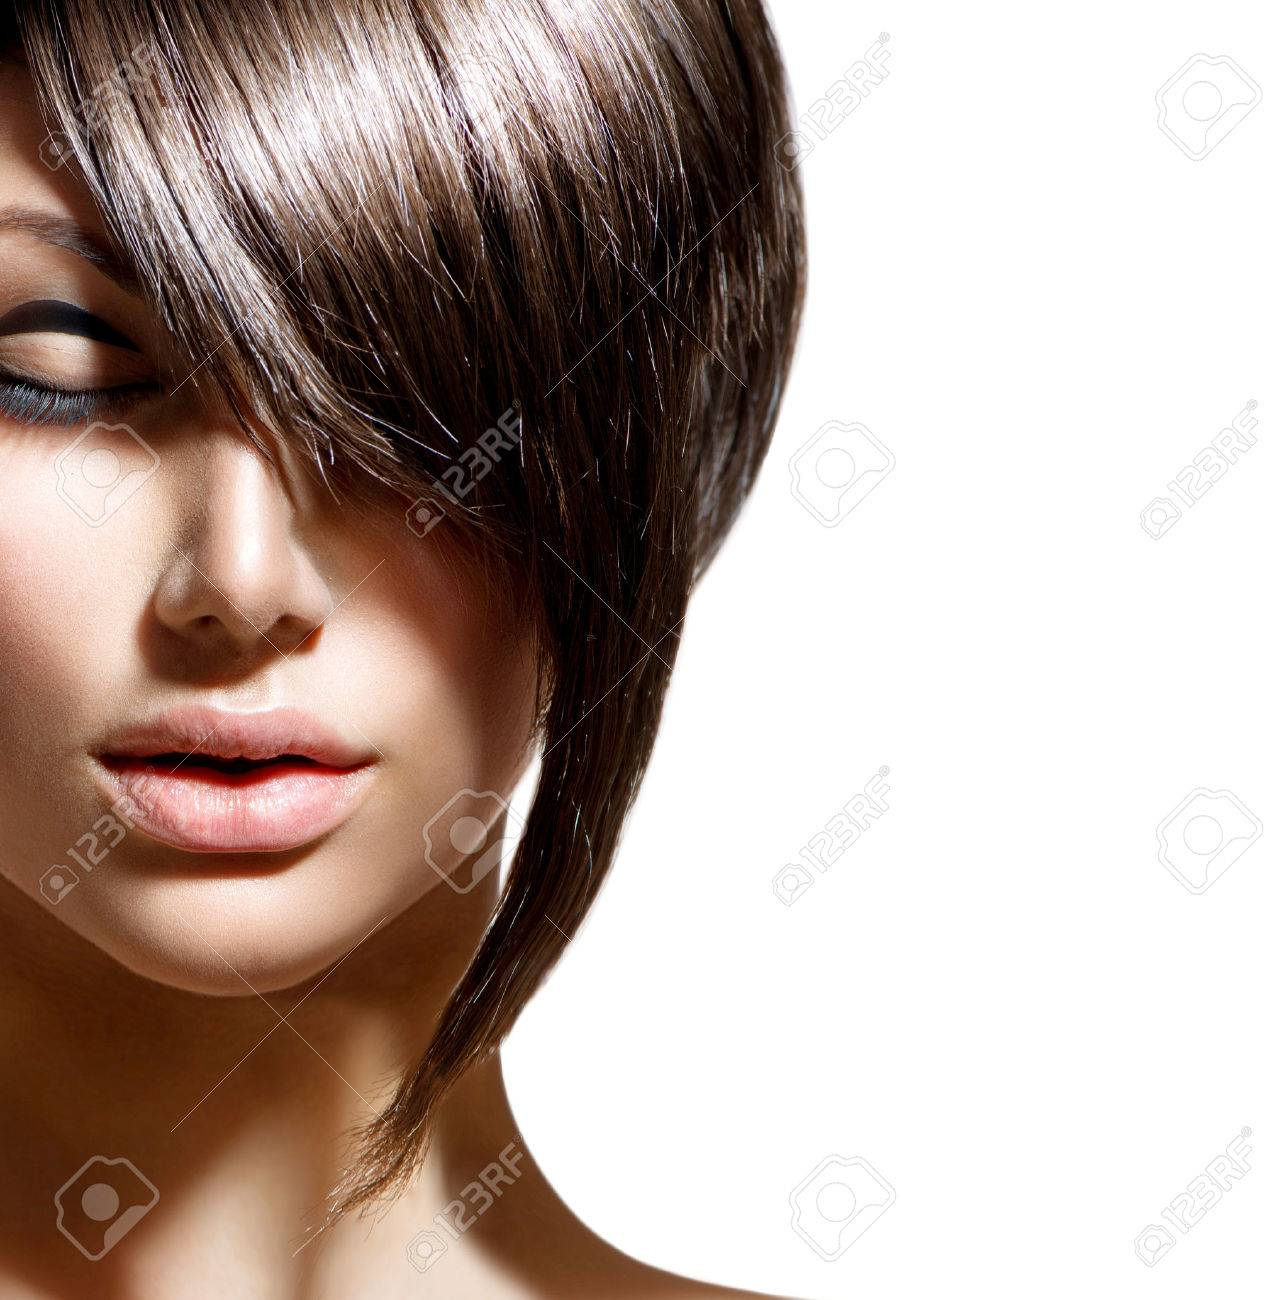 Haircut Stock Photos Images Royalty Free Haircut Images And Pictures